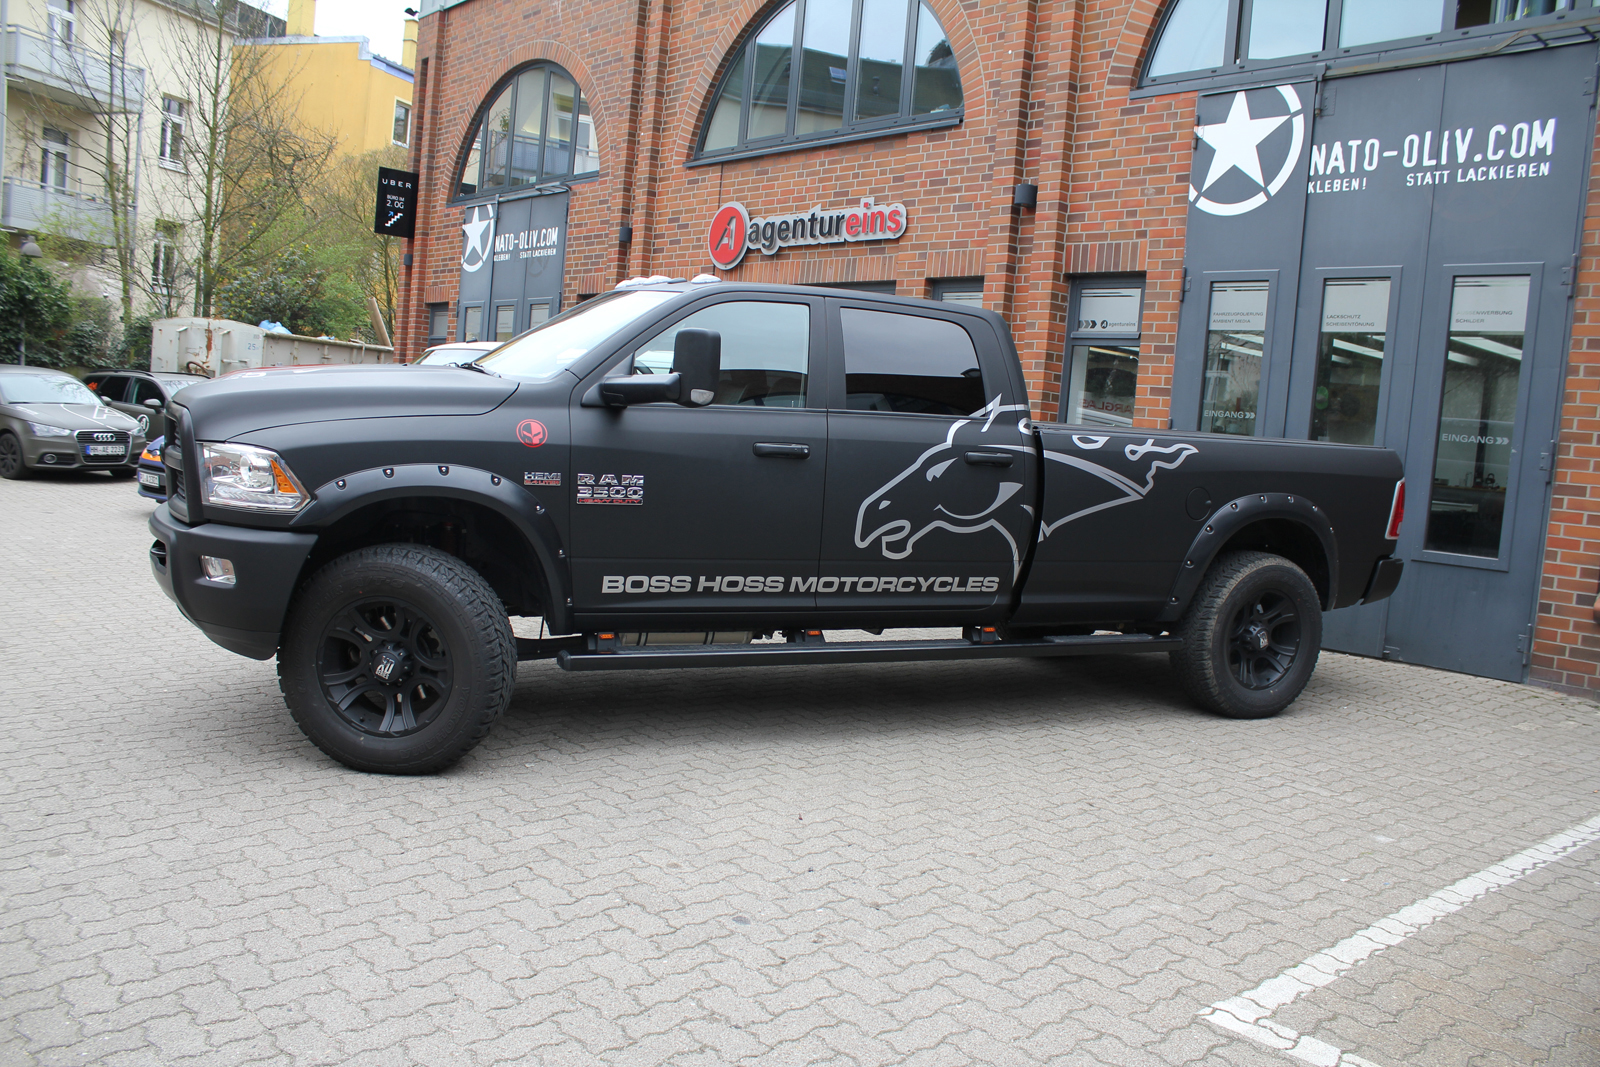 DODGE_RAM_CAR-WRAPPING_SCHWARZ_MATT_BOSS_HOSS_MOTORCYCLES_BRANDING_01